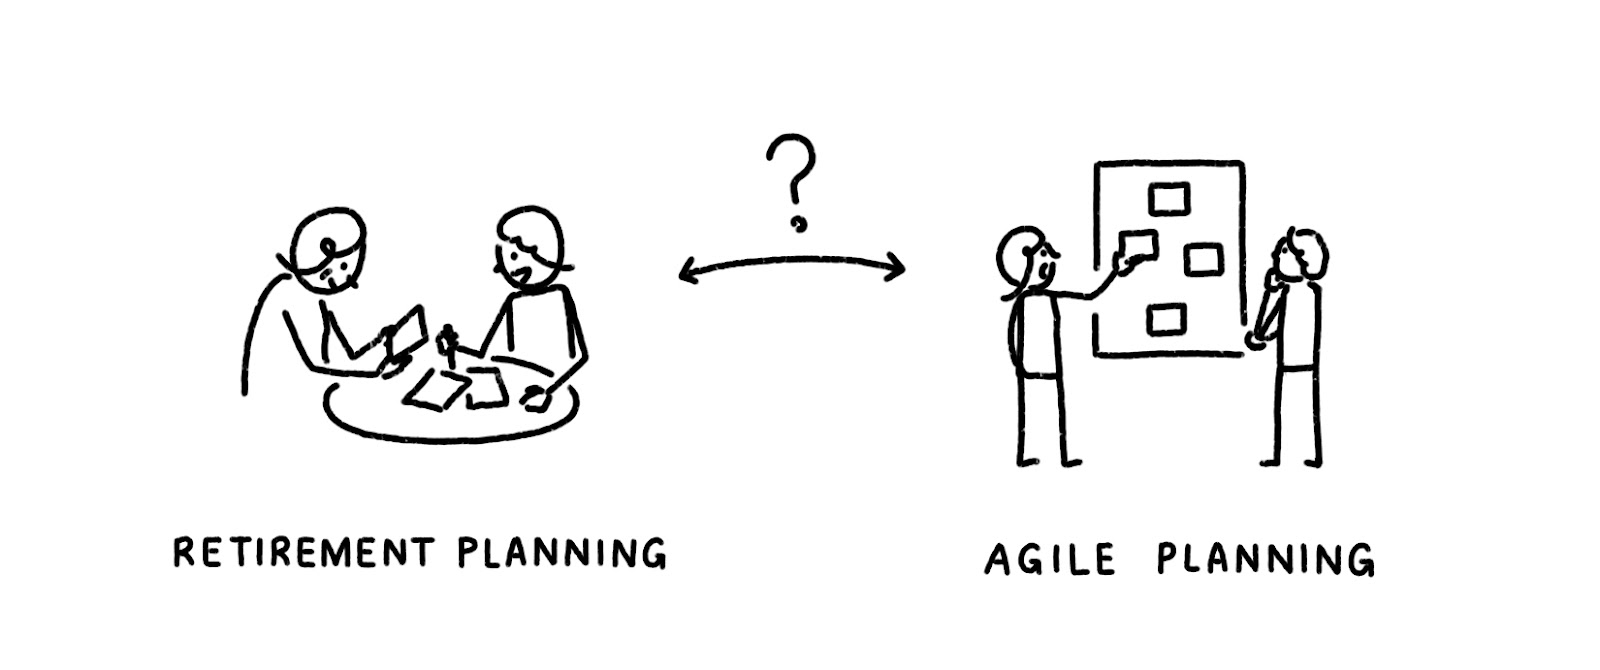 Descriptive graphics for retirement planning and agile planning from a parallel worlds exercise.